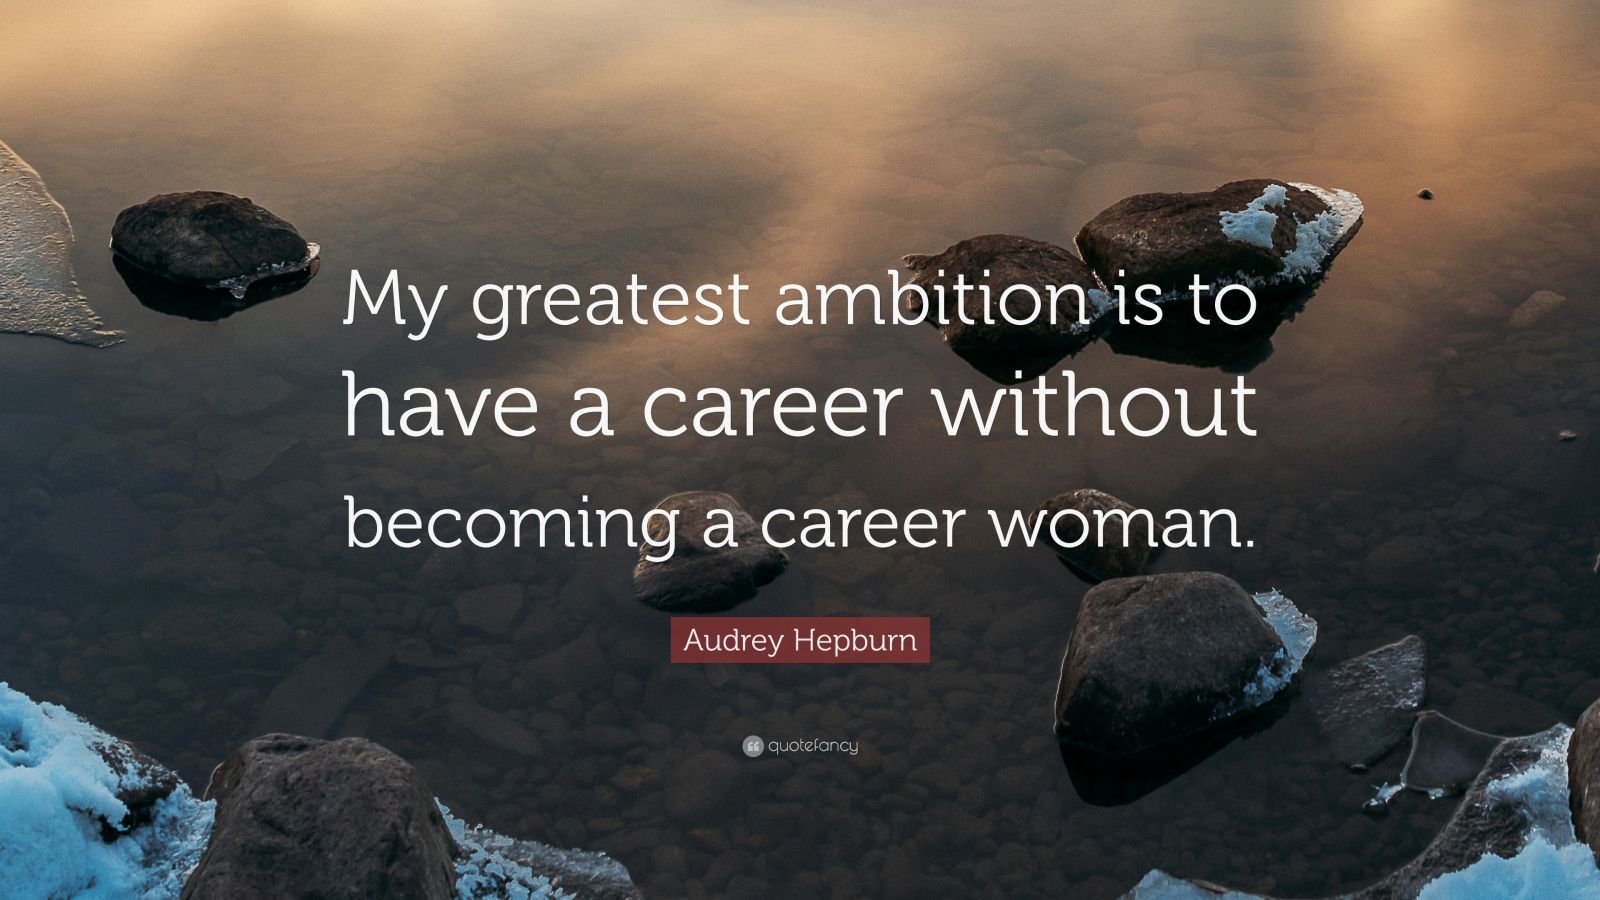 My ambition is to become chief